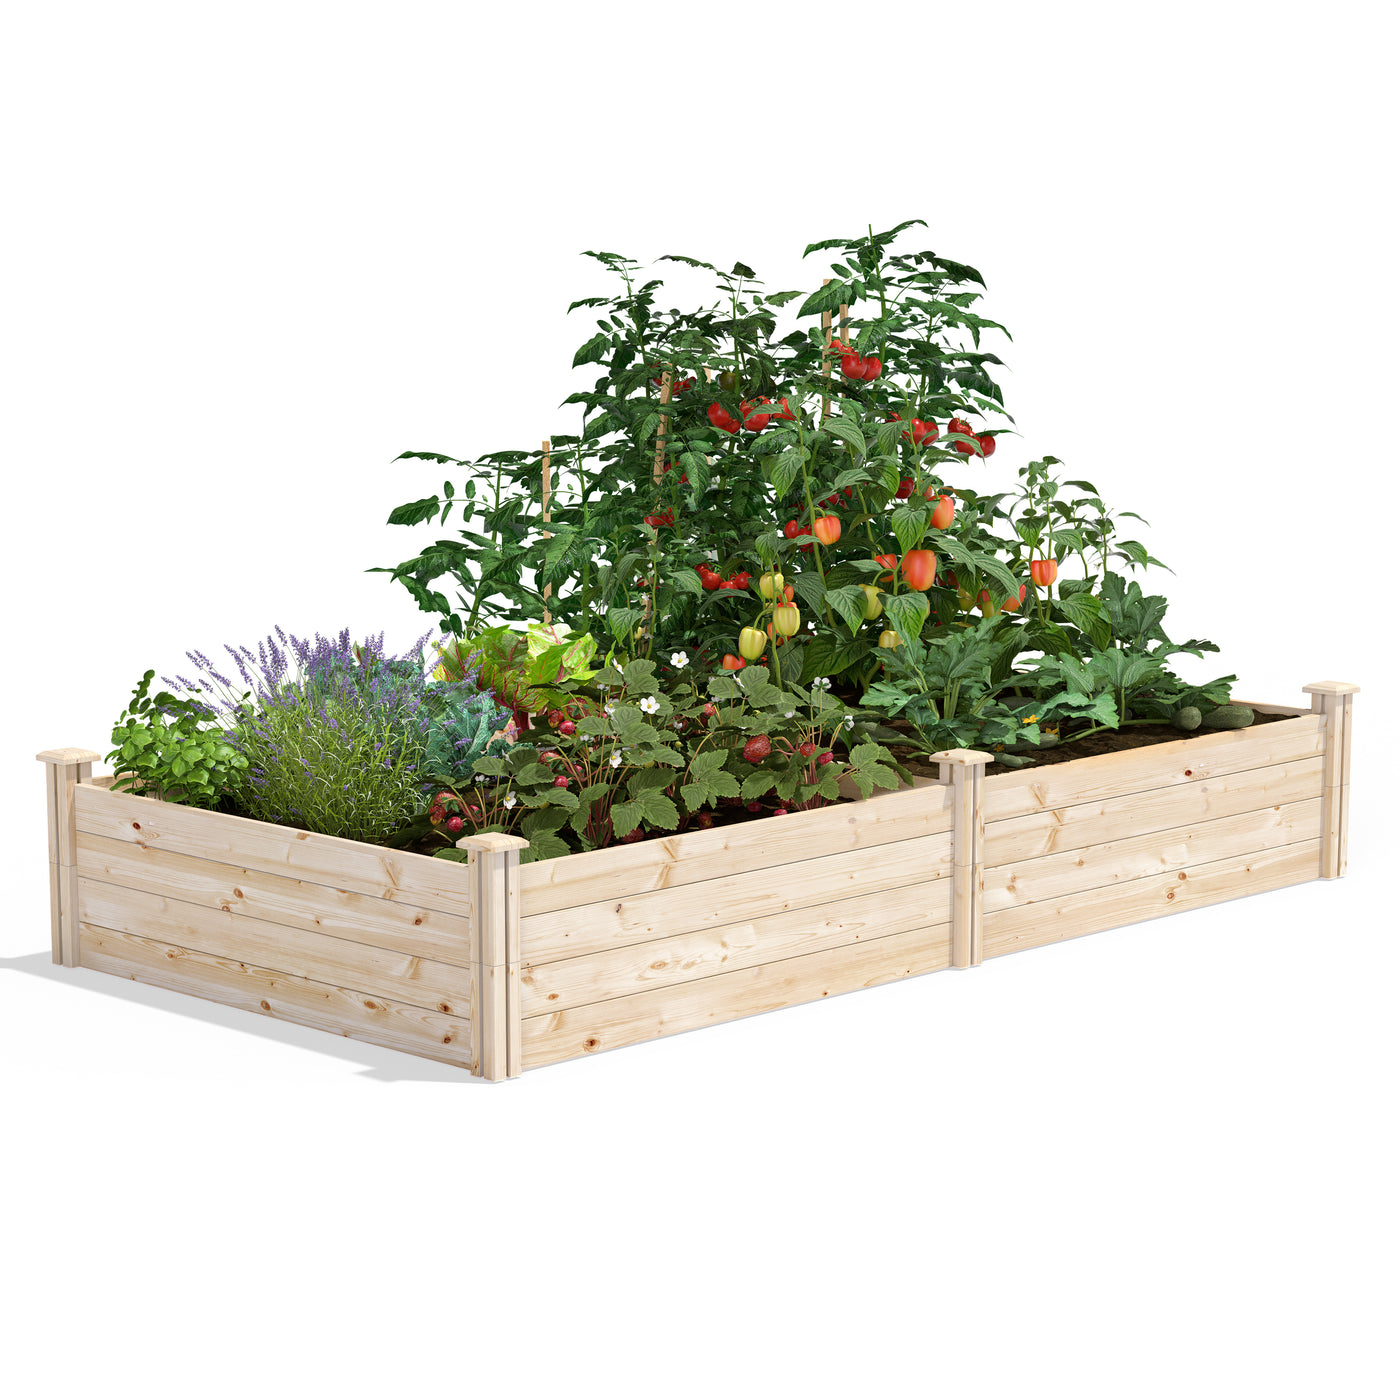 Cedar Raised Garden Bed 4 Ft X 8 Ft X 14 In Rc12s28b Greenes Fence Greenes Fence Company